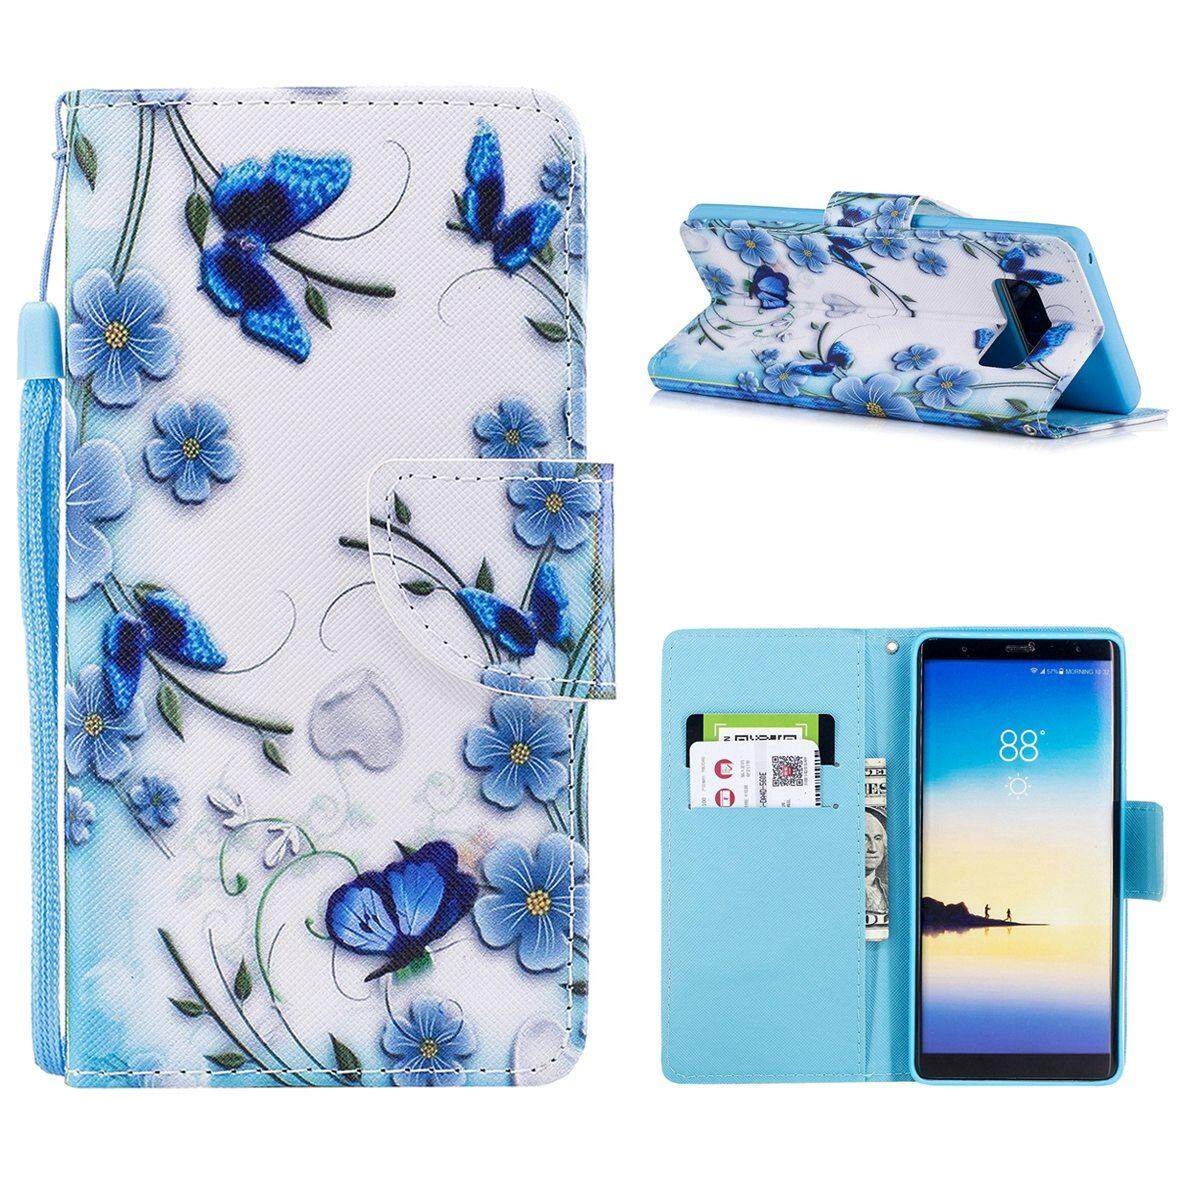 For Samsung Galaxy Note 8 Case, Premium Wallet PU Leather Flip Cover Casing - intl